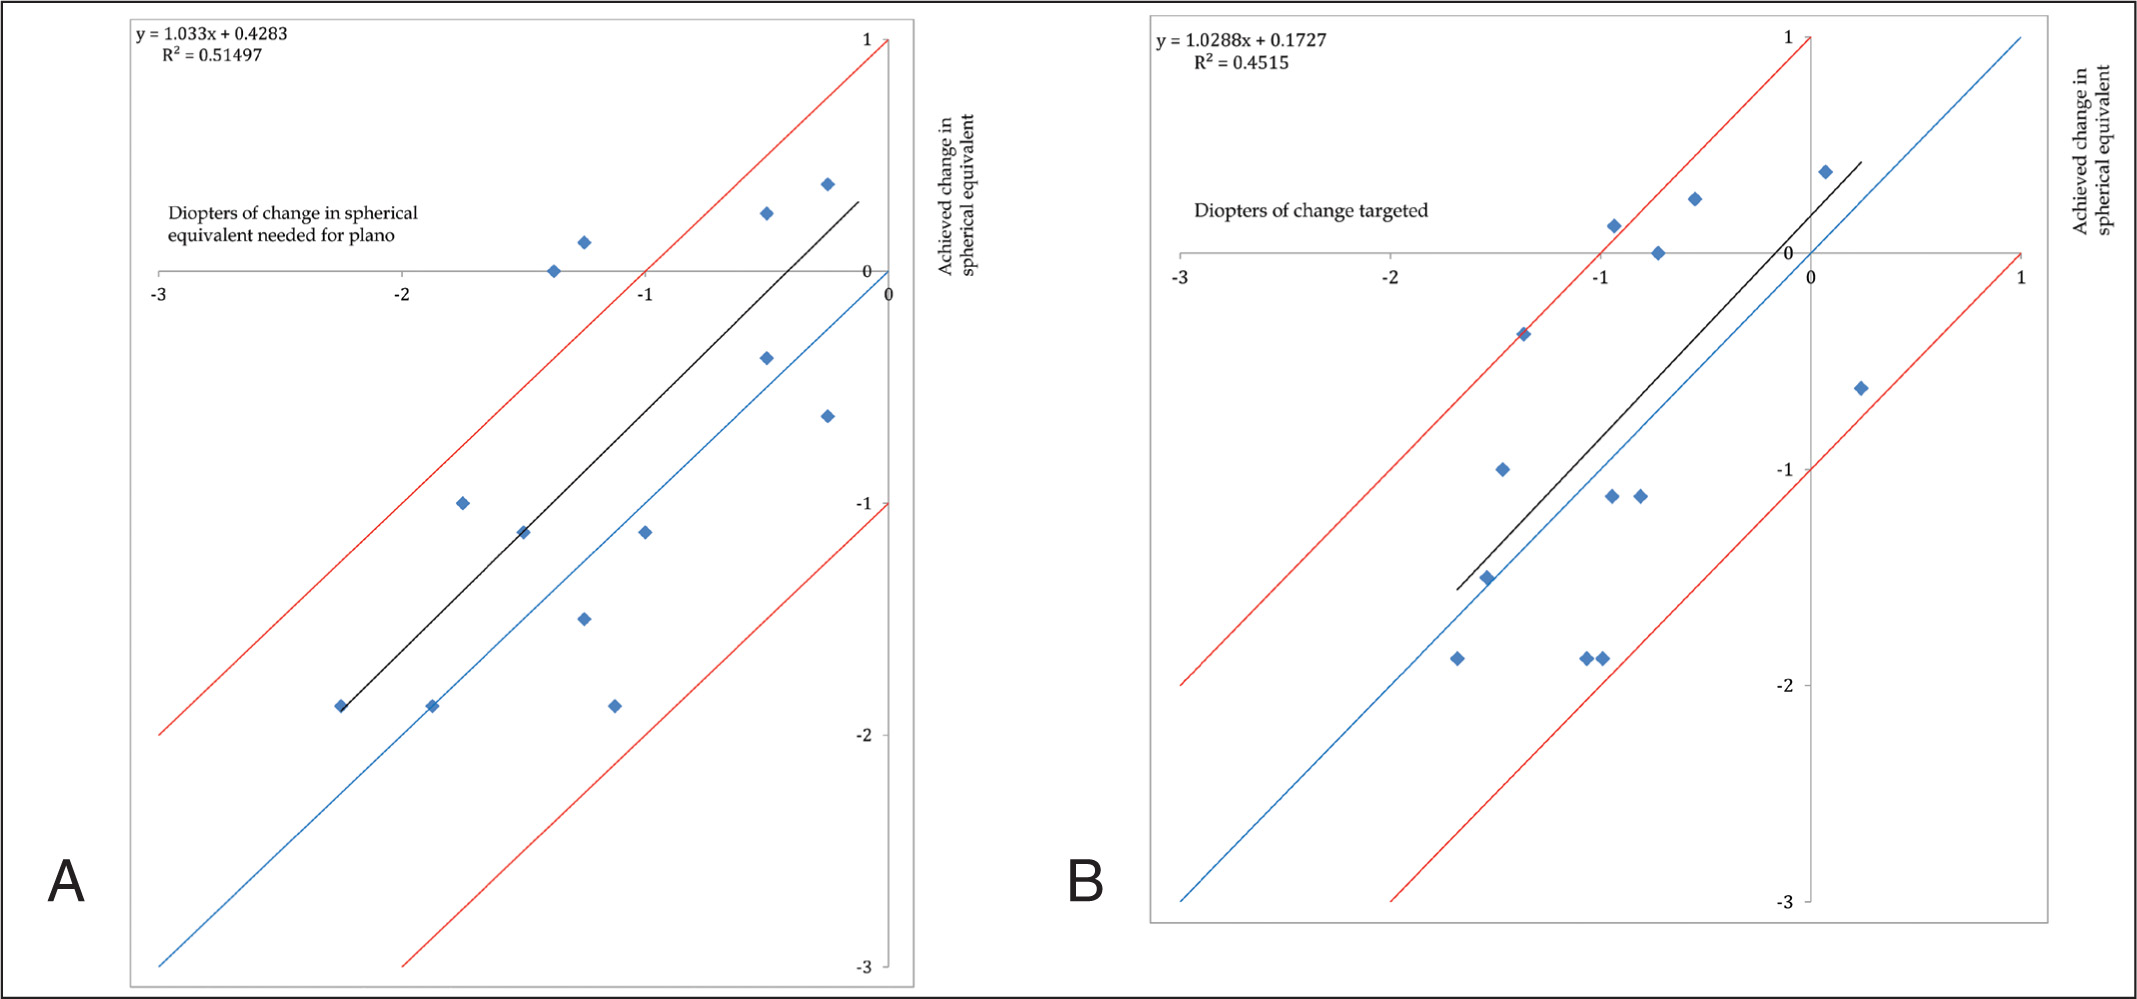 (A) Comparison of the treatment effect of photorefractive keratectomy (PRK) enhancement for hyperopia to the effect needed to achieve a plano refraction. (B) Comparison of the treatment effect of PRK enhancement for hyperopia to the treatment performed by the surgeon. The blue line is a 1:1 effect and the red lines show the +1 and −1 D error lines. D = diopters